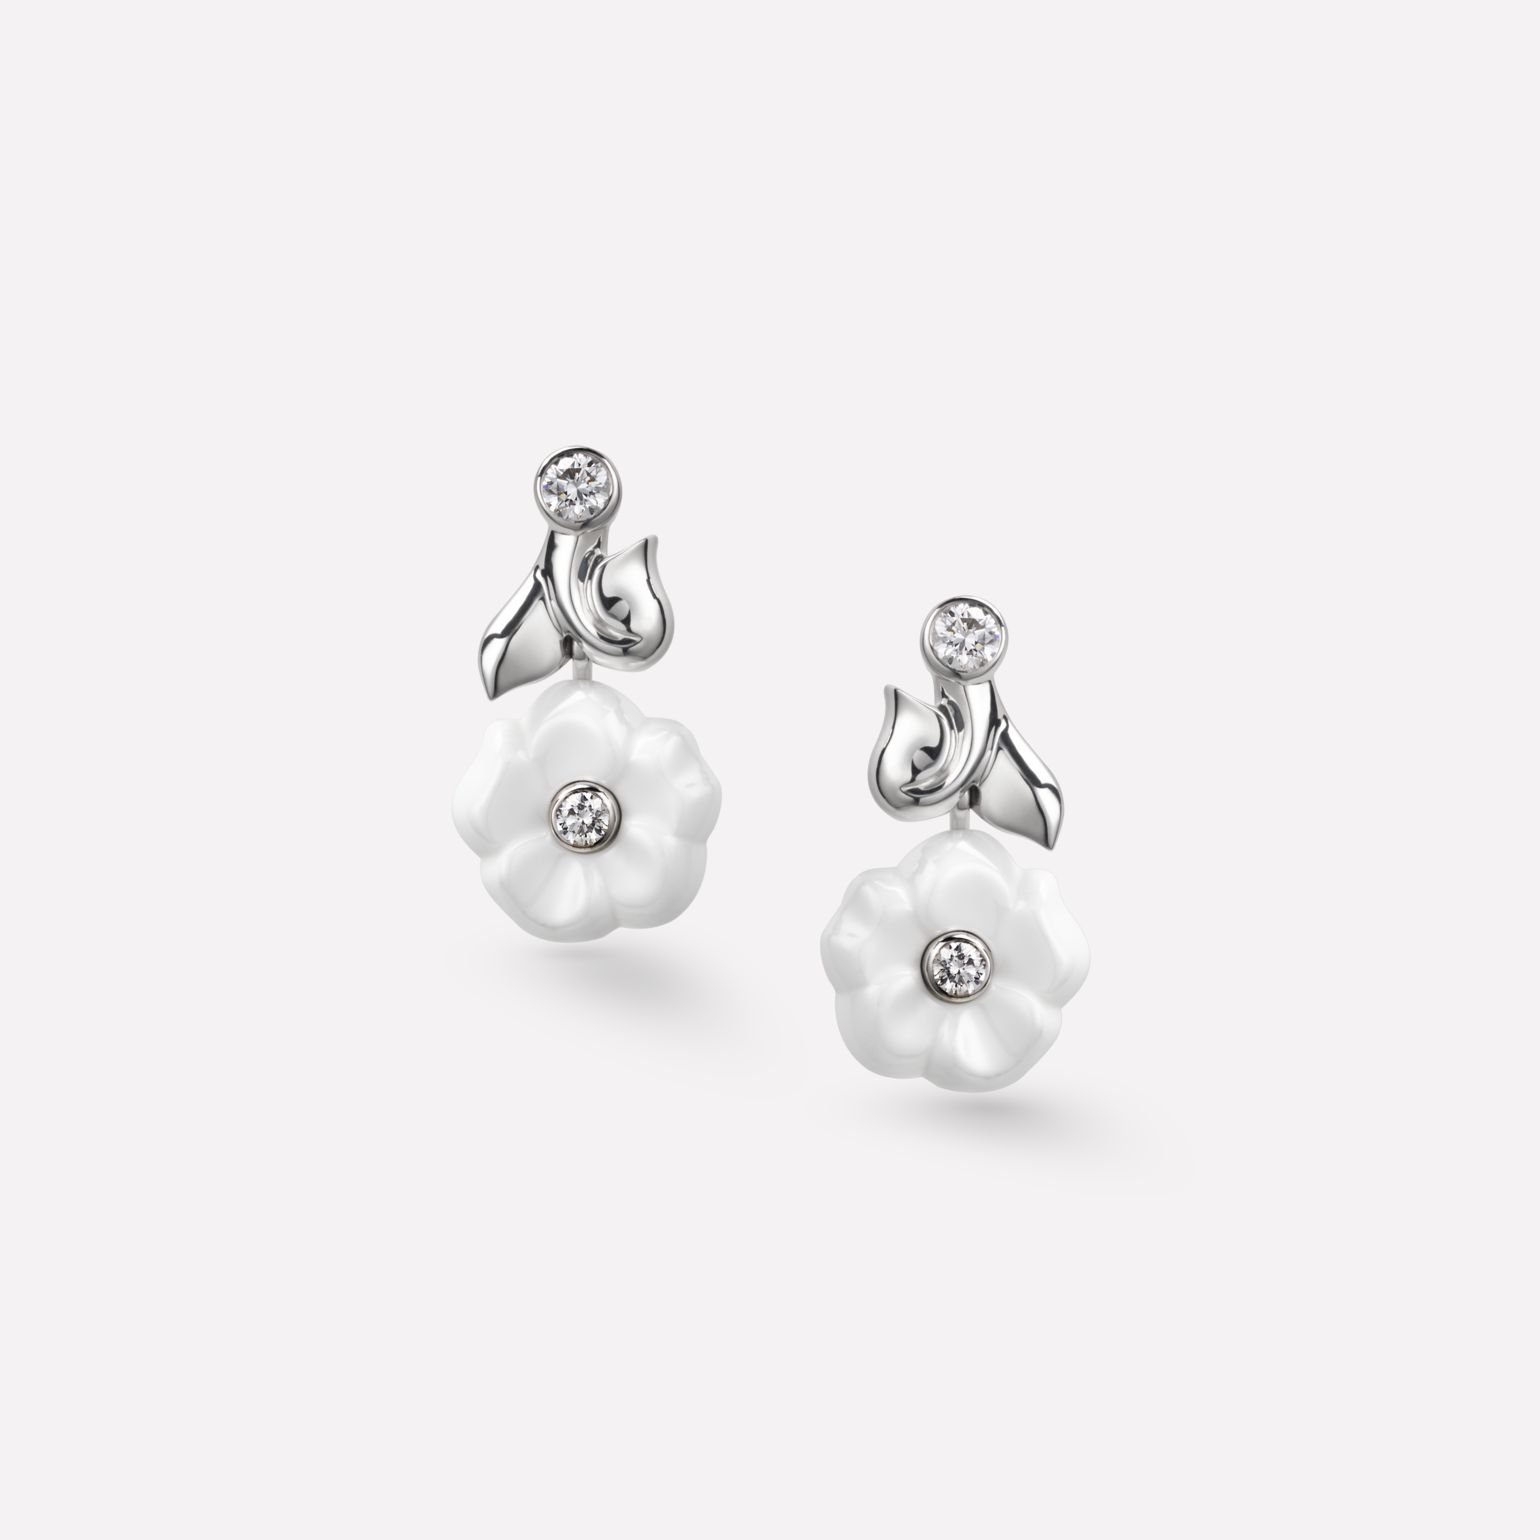 Camélia earrings Camélia Galbé earrings in white ceramic, 18K white gold, and diamonds